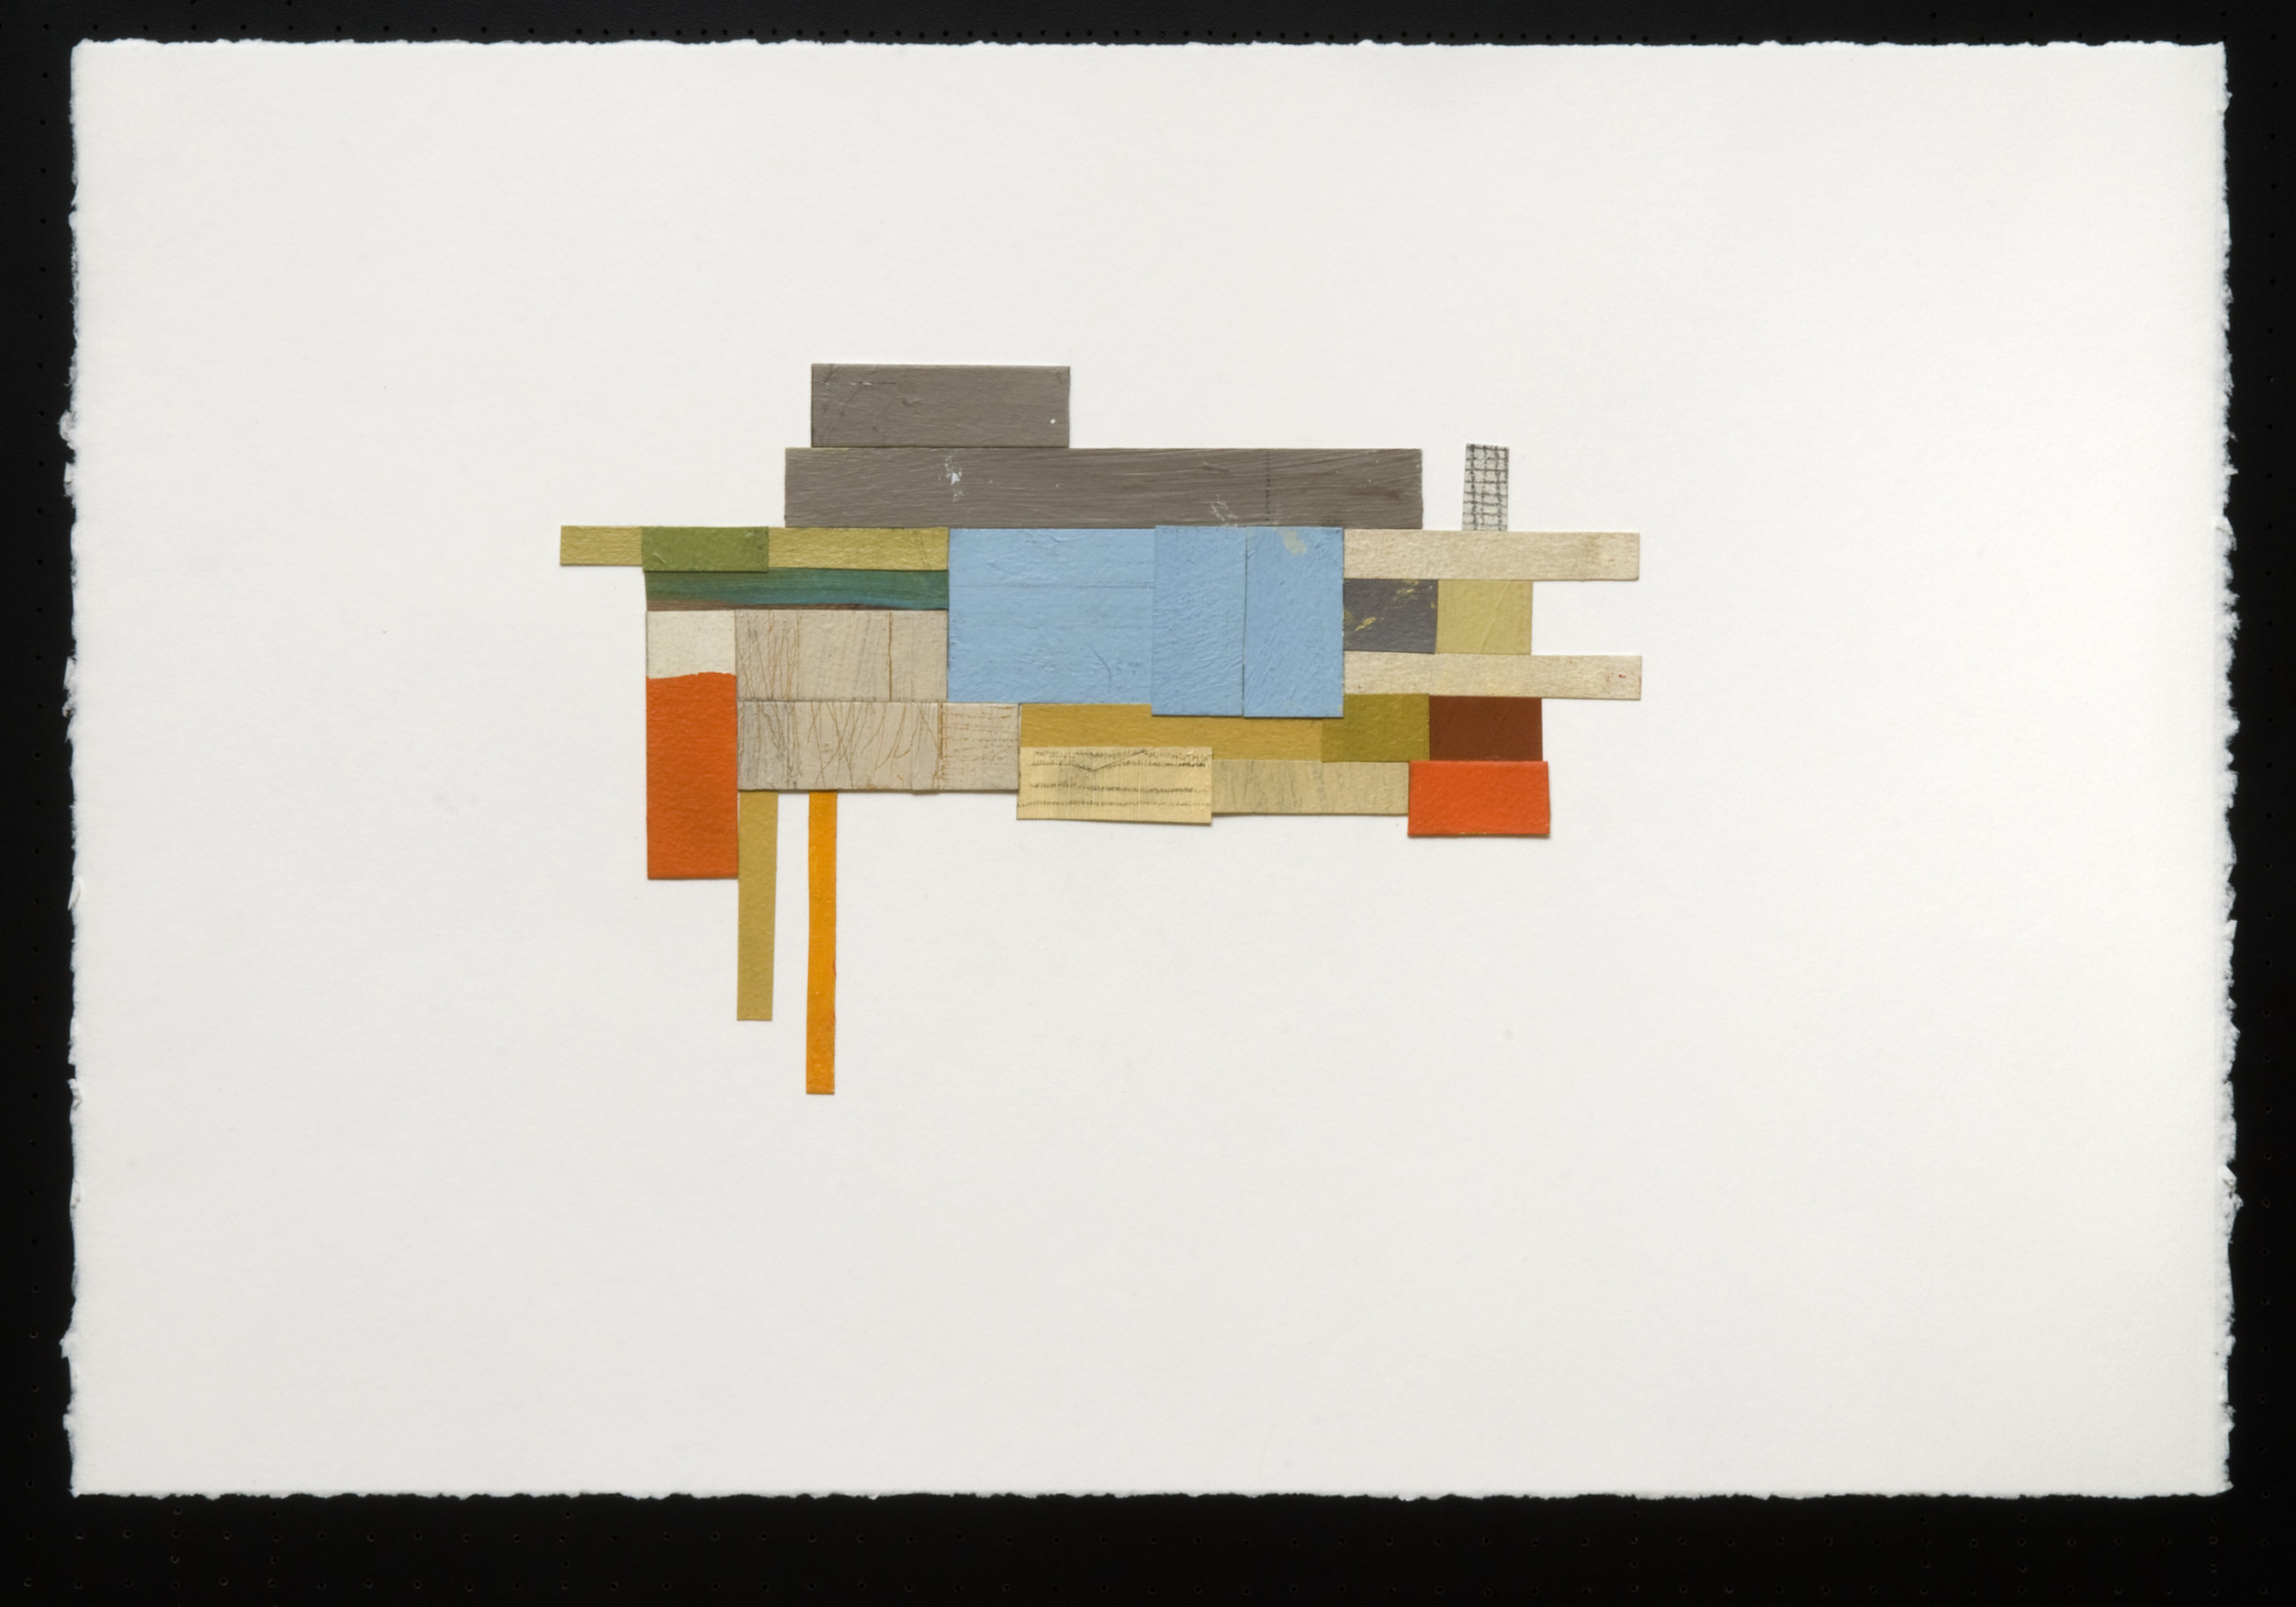 "Structure 1, acrylic/collage/graphite on paper, 15 x 22"" - SOLD"